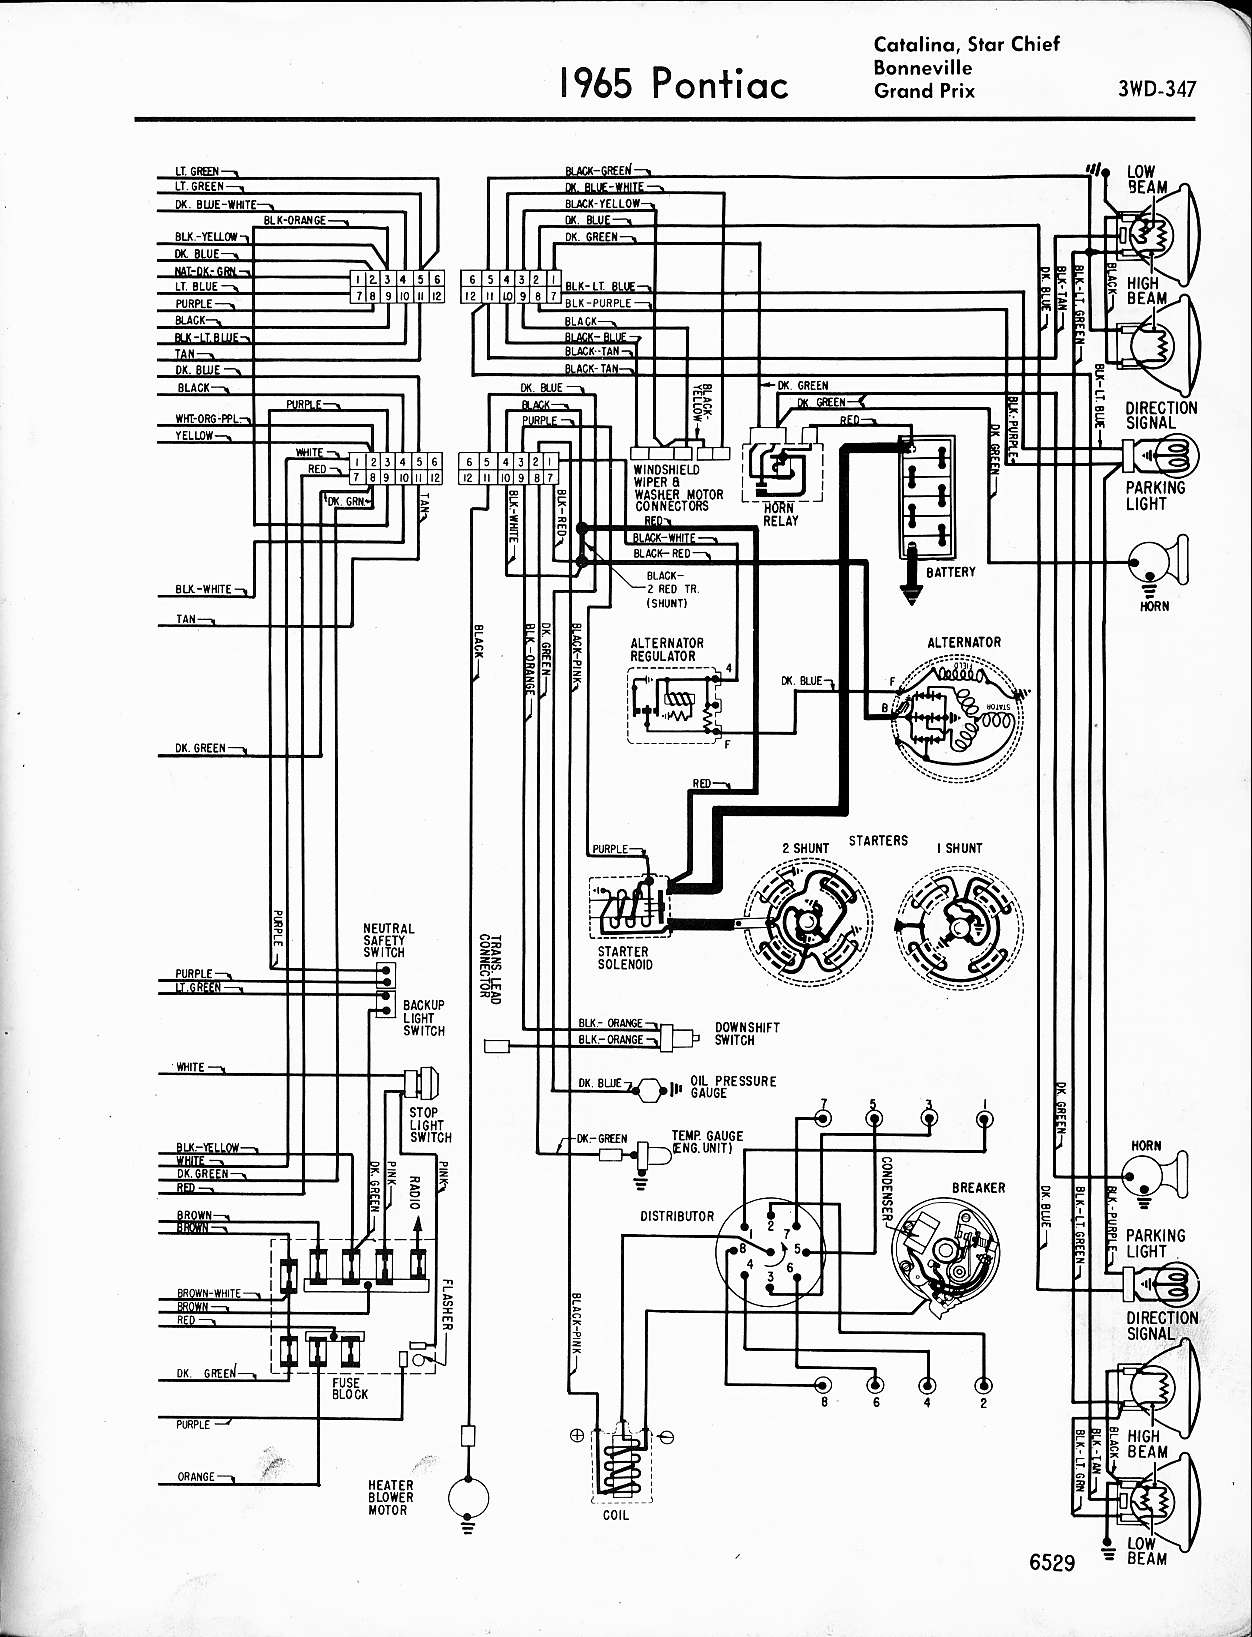 2004 pontiac bonneville wiring schematic wiring schematics diagram 1972 chevelle engine wiring harness 1965 pontiac bonneville wiring diagram detailed schematic diagrams pontiac radio wiring diagram 2004 pontiac bonneville wiring schematic